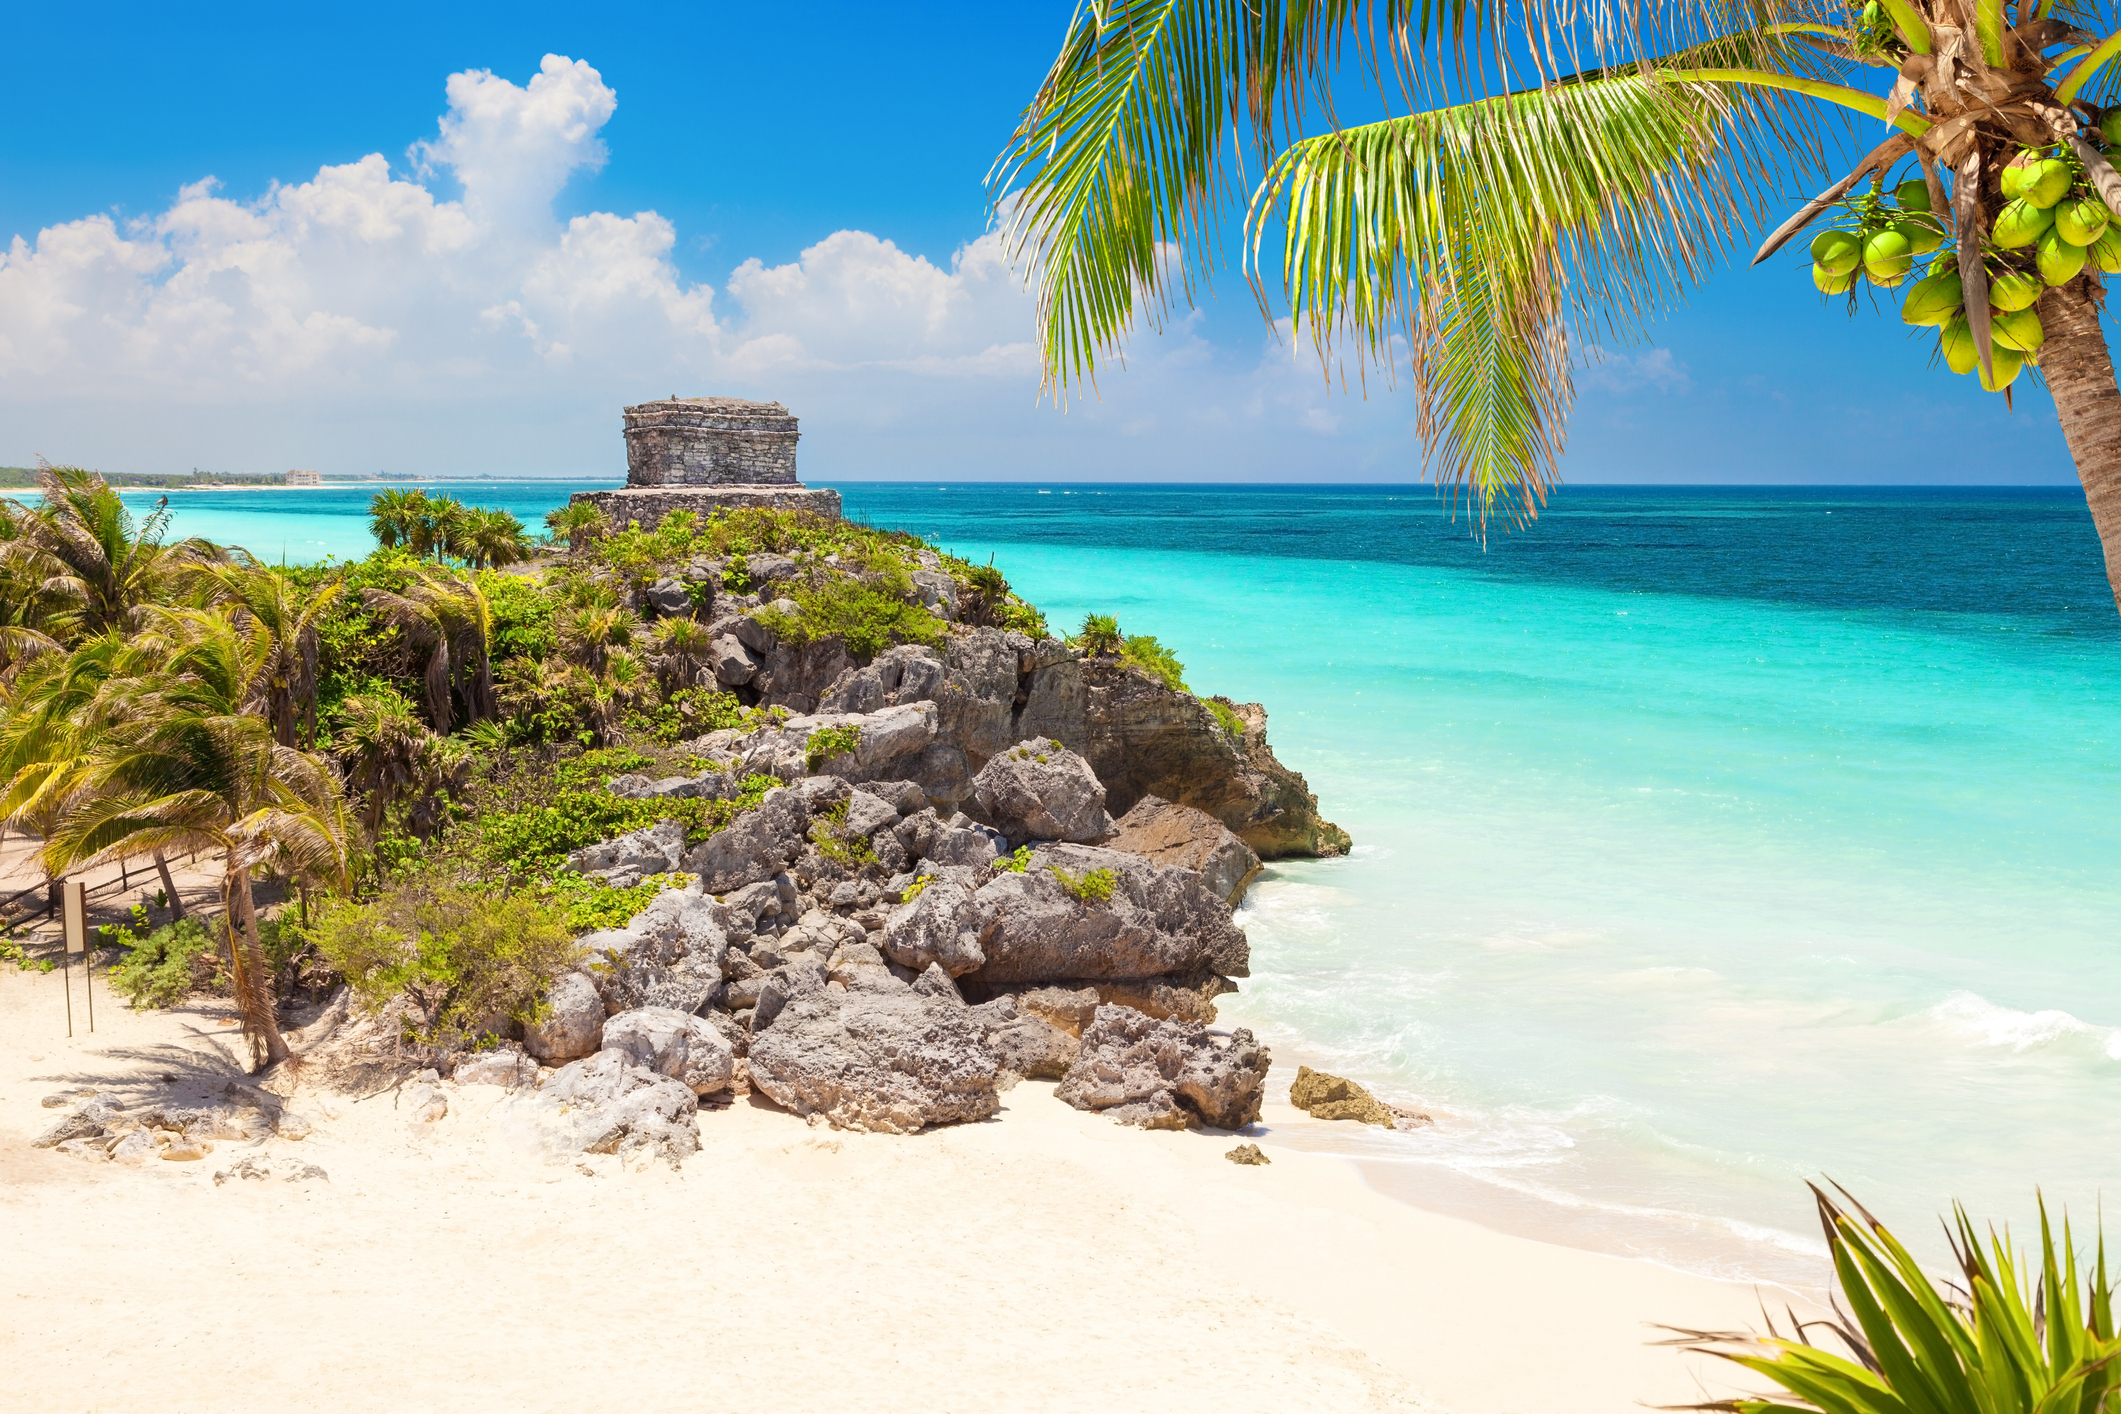 Ancient Mayan ruins in Tulum, Mexico. (iStock)